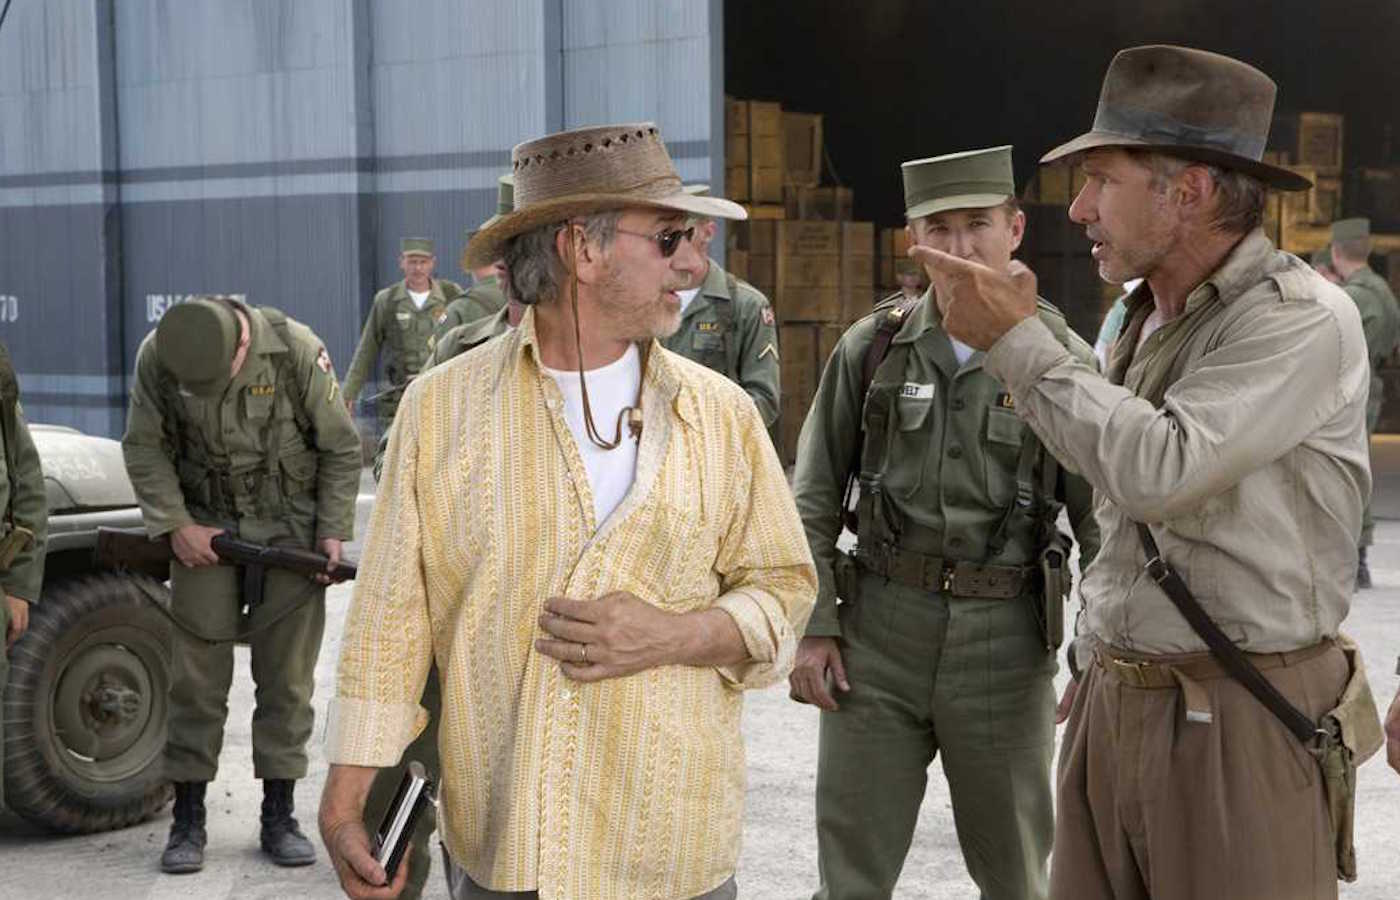 steven-spielberg-harrison-ford-indiana-jones.jpg